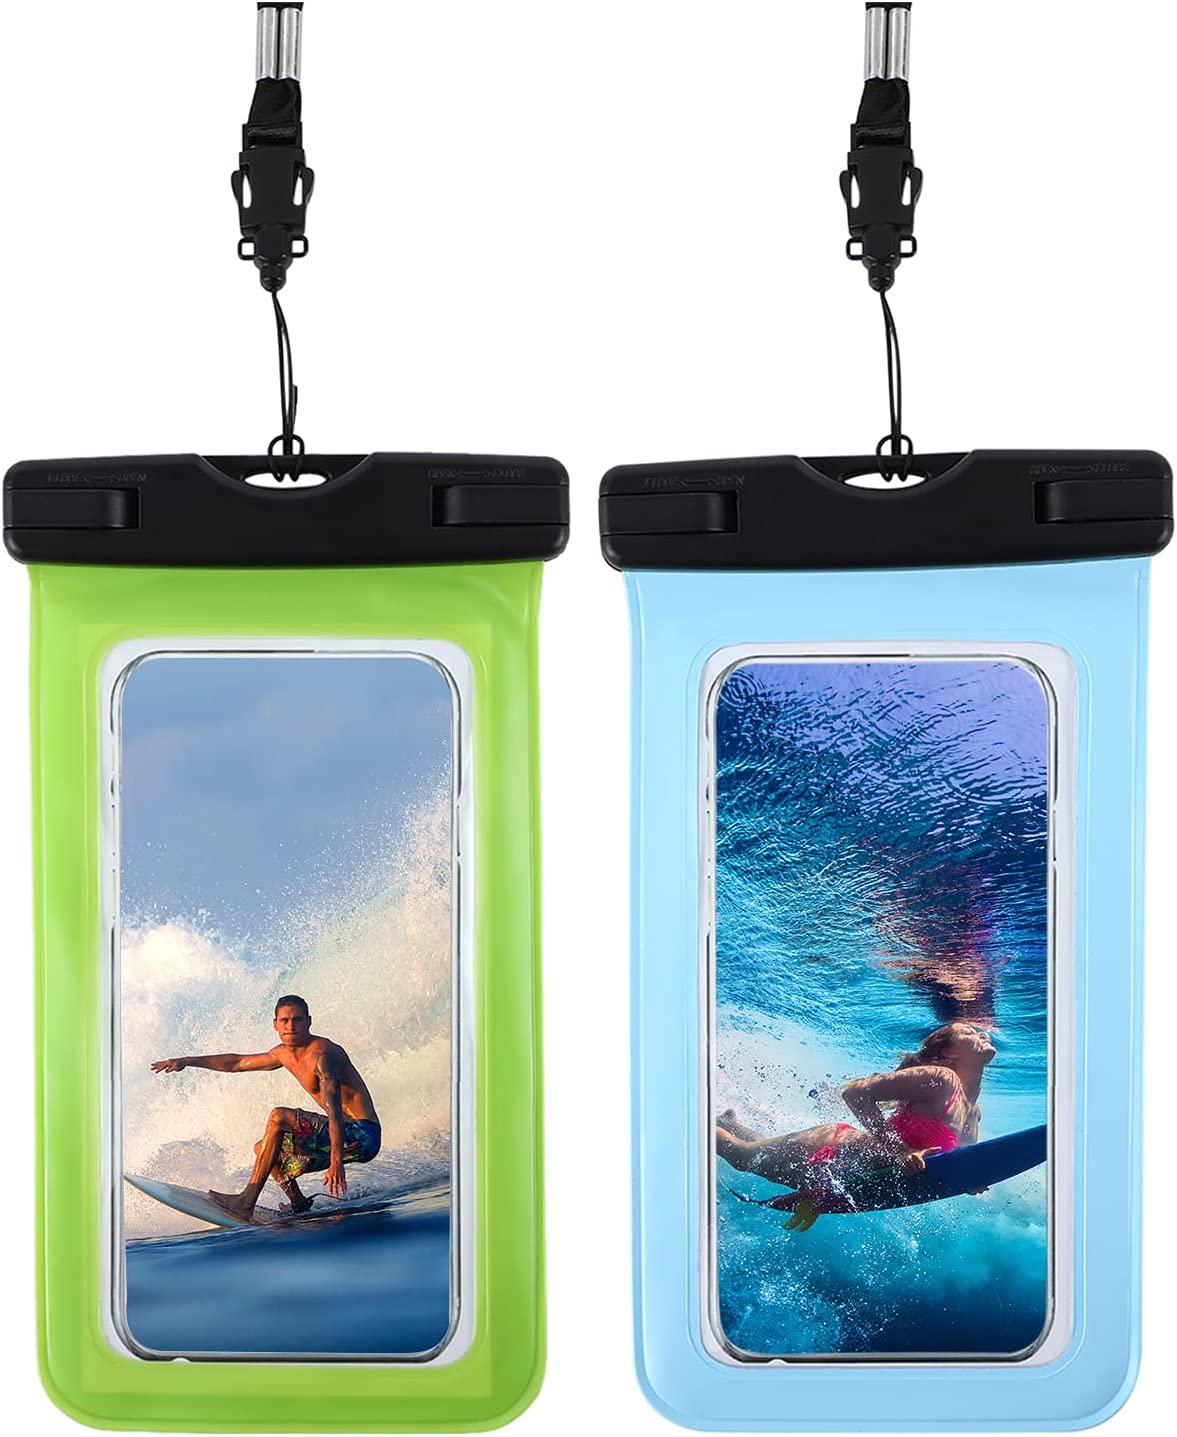 Universal Waterproof Pouch, IP68 Waterproof Cellphone Dry Bag Underwater Case for iPhone 12 Pro Max 11 Pro Max Xs Max XR X 8 7 6S, Galaxy S21 Ultra S20 Note20 10 up to 7